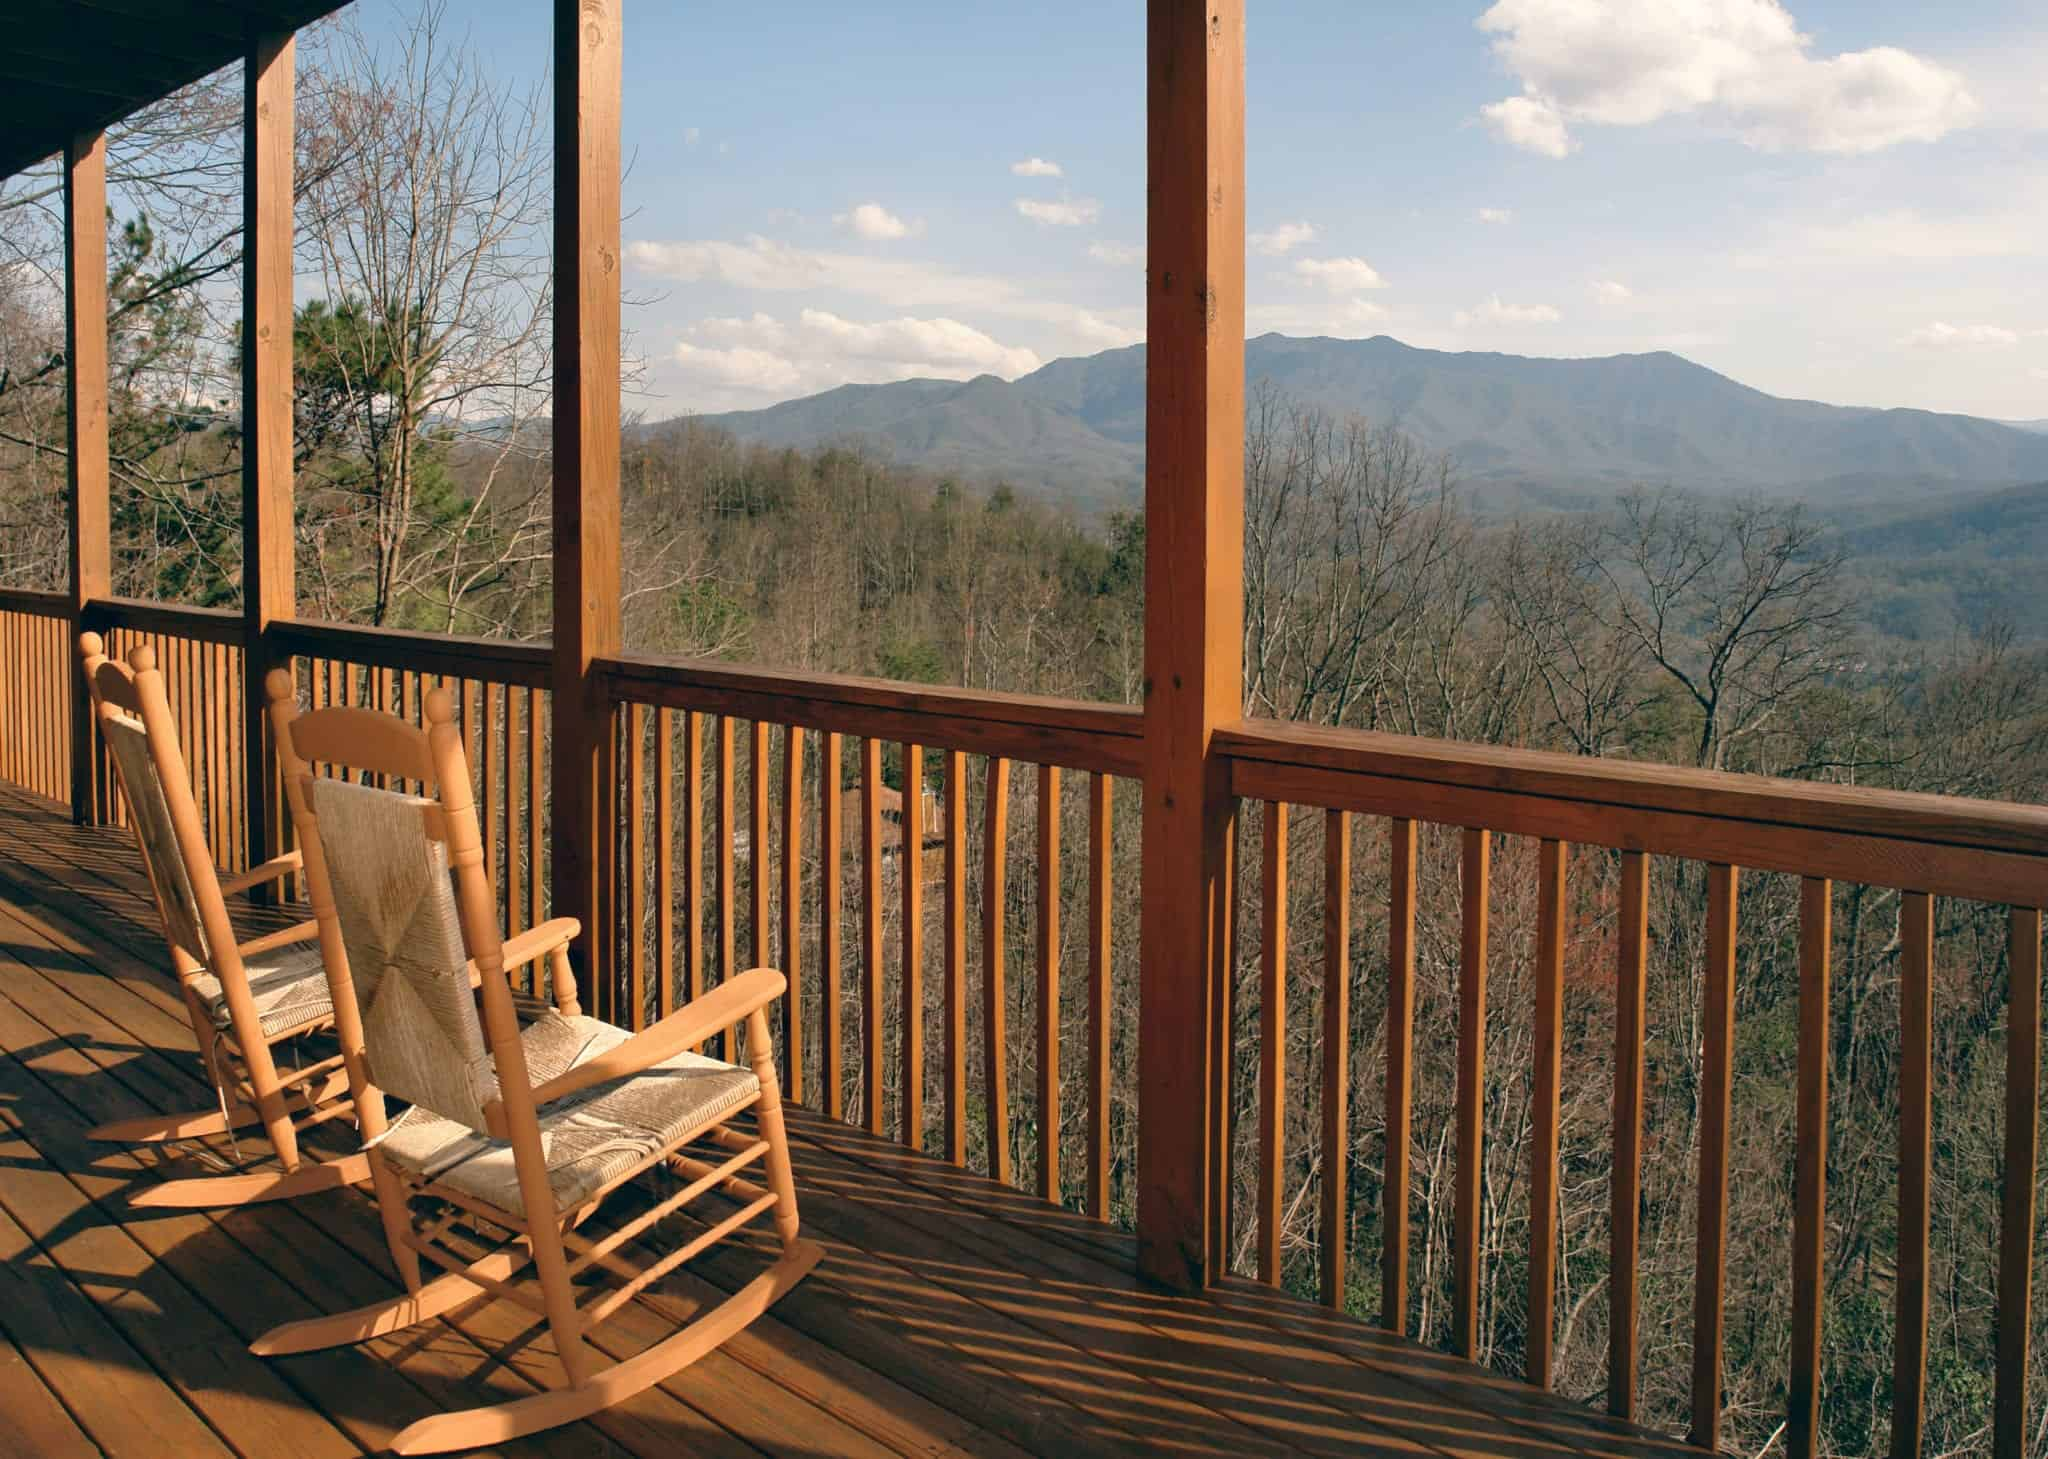 cheap buffalo mountains river tn pigeon rent smoky tennessee cabin in rentals forge cabins